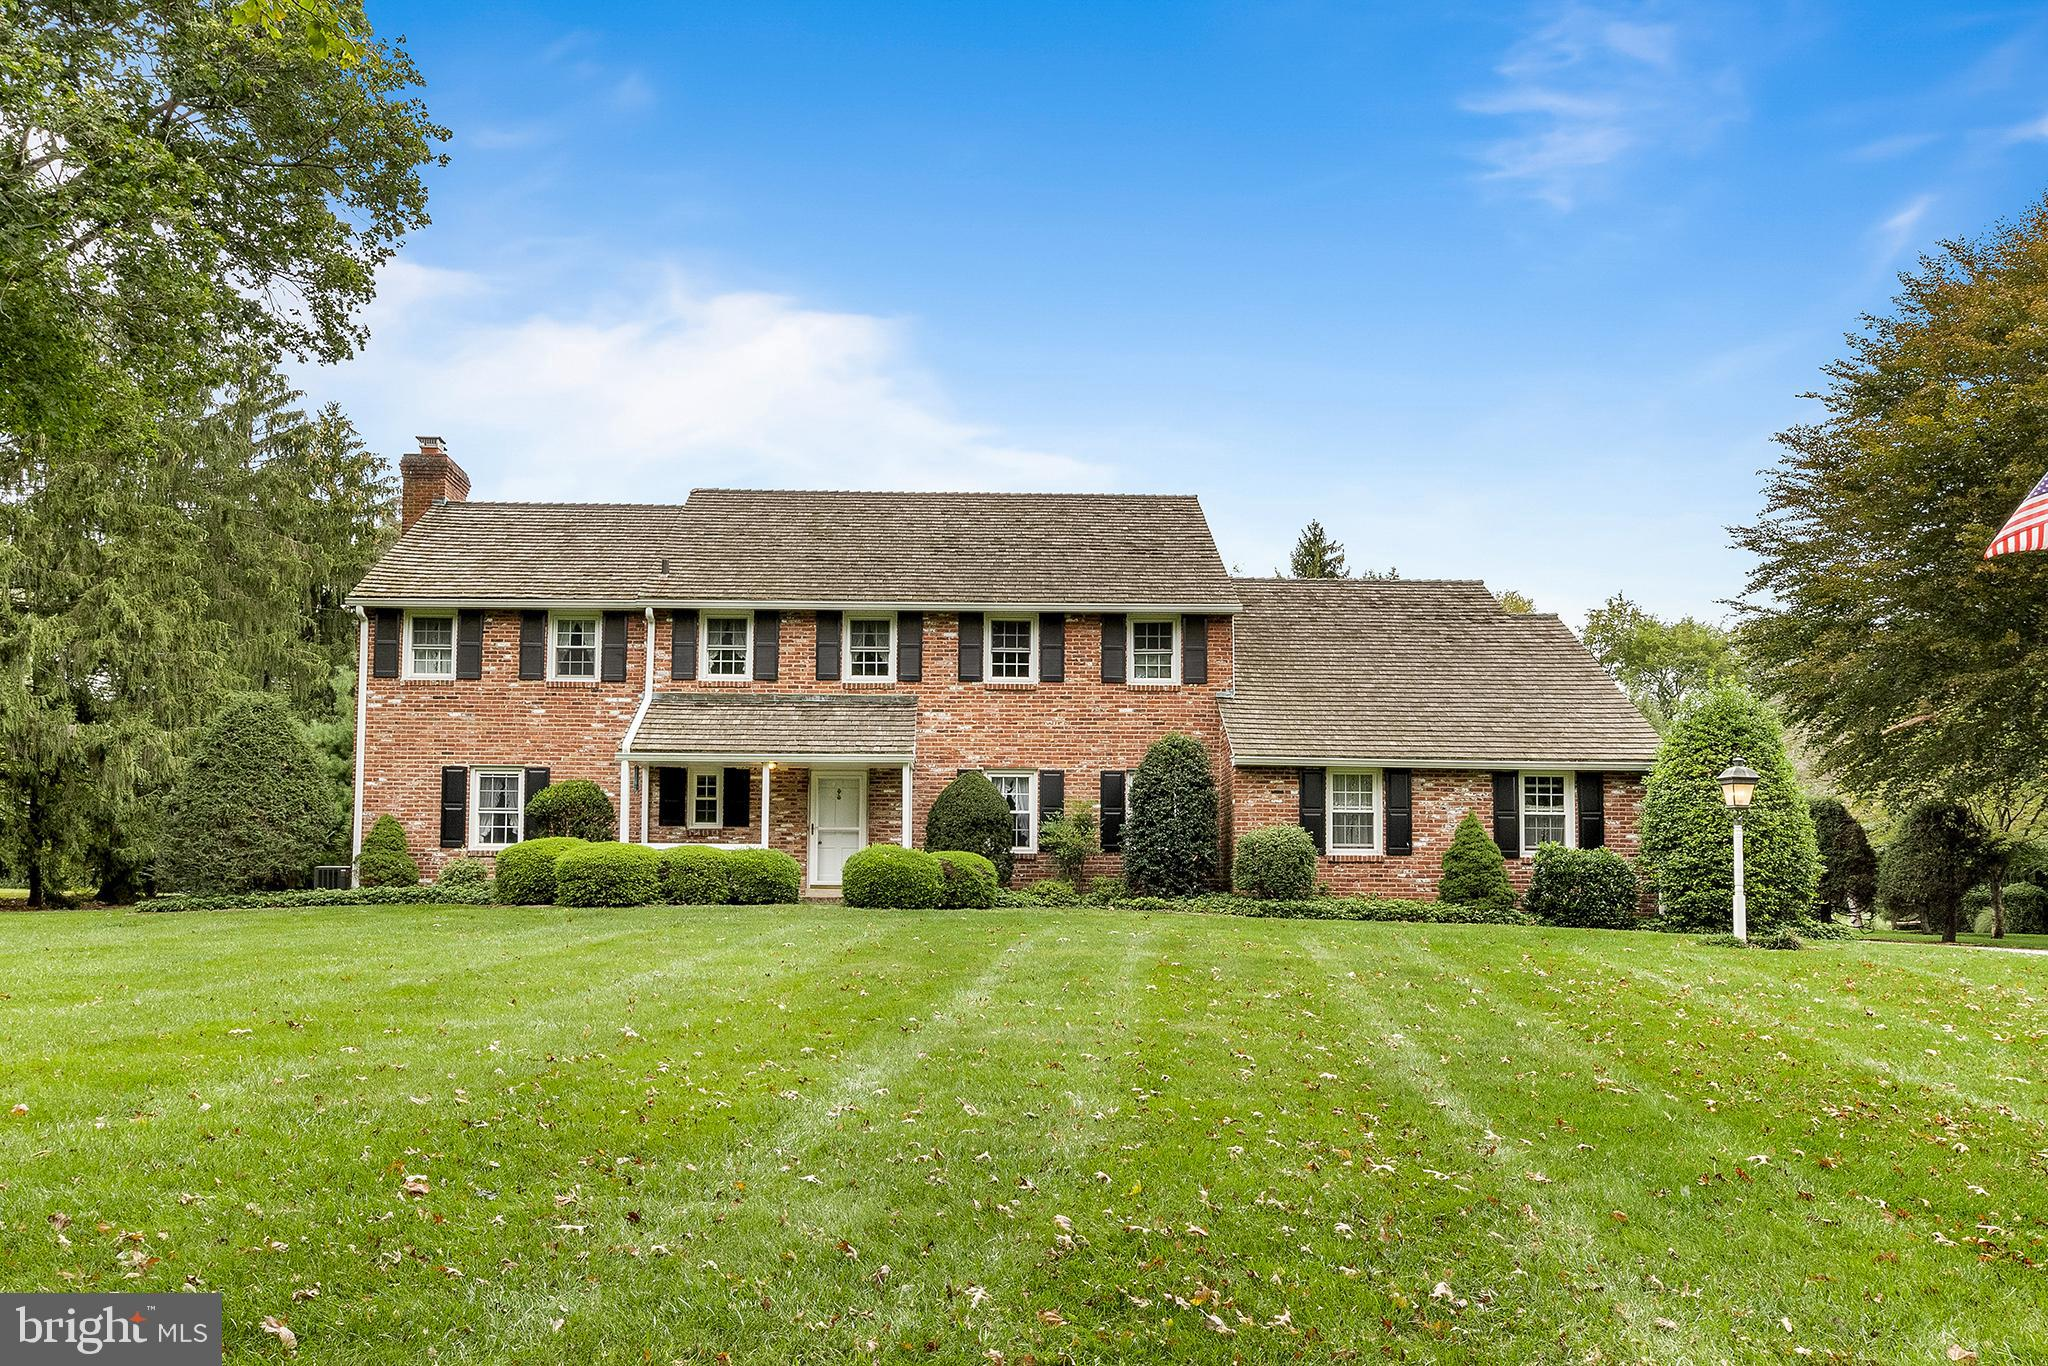 Nestled upon one of Tredyffrin Township's most desirable streets, welcome home to this traditional five bedroom colonial. Sprawling across a serene lot with a beautiful brick facade, 1893 Fox Hill Lane is filled with charming features, an efficient layout, and a spacious backyard with an in-ground pool.  Enter into a light-filled main level showcasing brick and wood floors and many oversized windows. A living room with a wood burning fireplace, a powder room, and a formal dining room are located just off of the foyer. A quaint den with paneled wooden walls leads to the gourmet kitchen boasting ample wooden cabinetry, granite countertops, and a breakfast nook with a light fixture. Nearby, you'll find a generously sized home-office and a second half bath. Ideal for curling up with a good book or spending time with loved ones, a bright and cheery sunroom offers several walls of floor-to-ceiling windows, brick accents, and a cozy brick fireplace. This space is truly magnificent for watching the seasons change and provides direct access to the lavish backyard with an in-ground pool and a shed.  Five generously sized bedrooms can be found on the second floor, including a spacious primary suite with several windows and an ensuite bathroom. Bedrooms 2 & 3 enjoy use of a full hall bath, while Bedrooms 4 & 5 share a jack-n-jill bathroom. Additional highlights include an attached 2-car garage and an unfinished basement, ideal for storage. With potential to move  right in or customize this lovingly cared for residence to your tastes, come see all that this property has to offer.  Minutes away from many parks and biking trails, wonderful schools, and local Main Line businesses, residents enjoy a highly coveted location. Easy access to the Paoli train station, Rte 202, and the PA Turnpike make commuting a breeze.